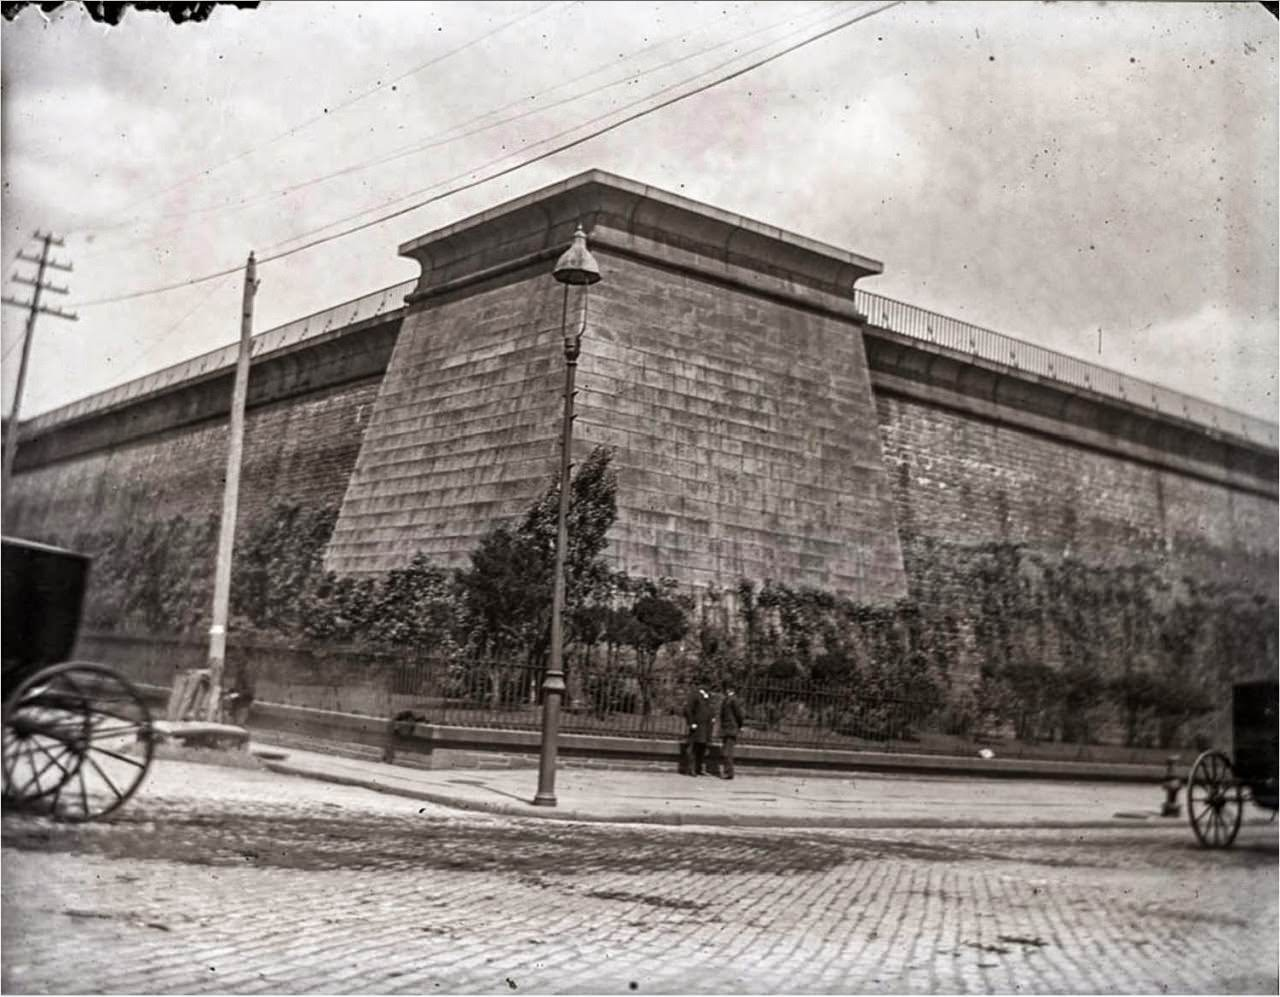 The Croton Aqueduct Distributing Reservoir, 40th Street and 5th Avenue, 1891